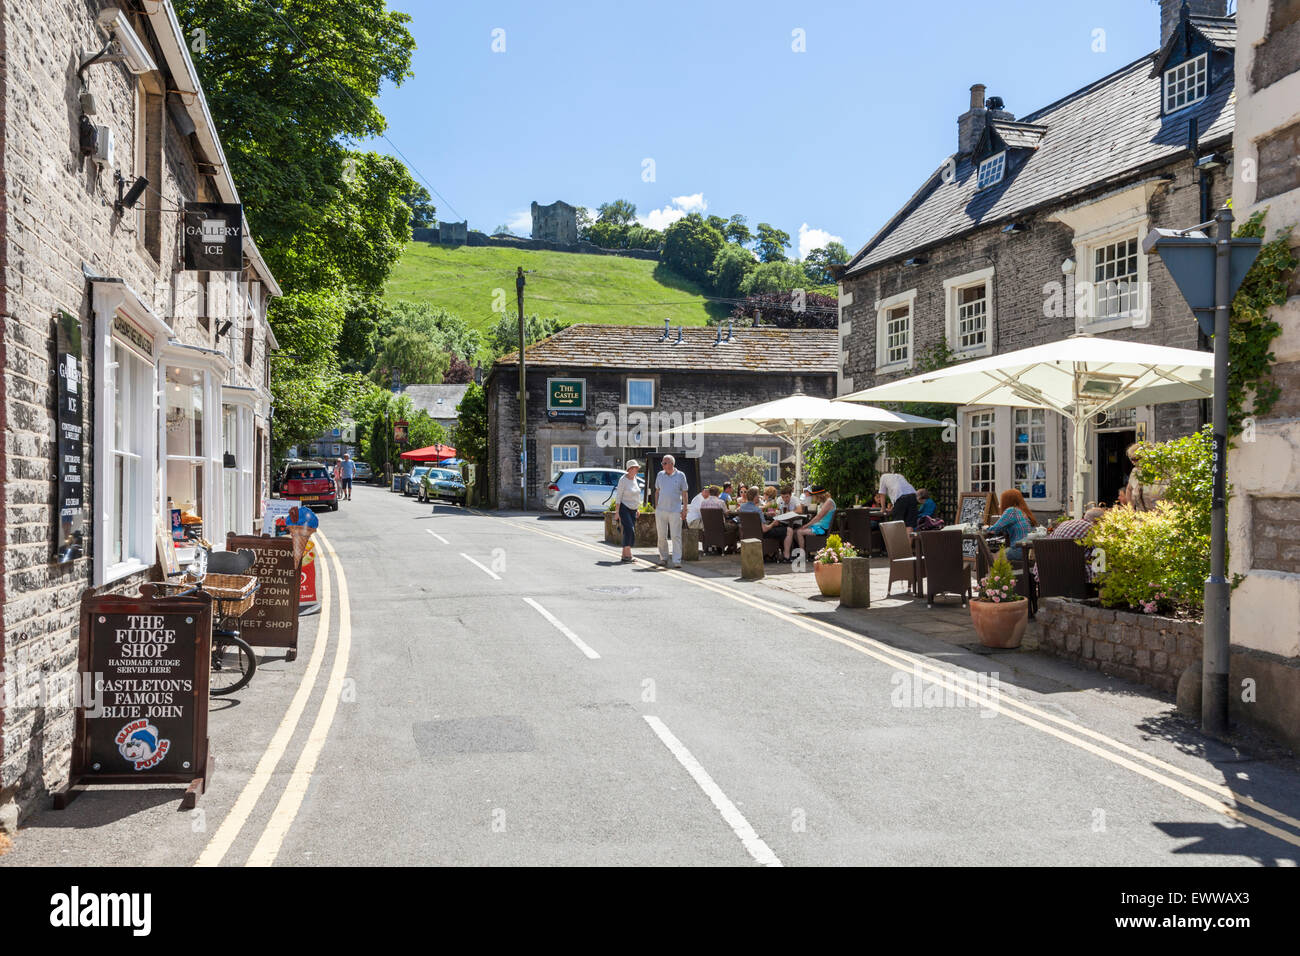 Shops and a pub in Castleton with Peveril Castle overlooking the village in Summer, Derbyshire, Peak District National - Stock Image